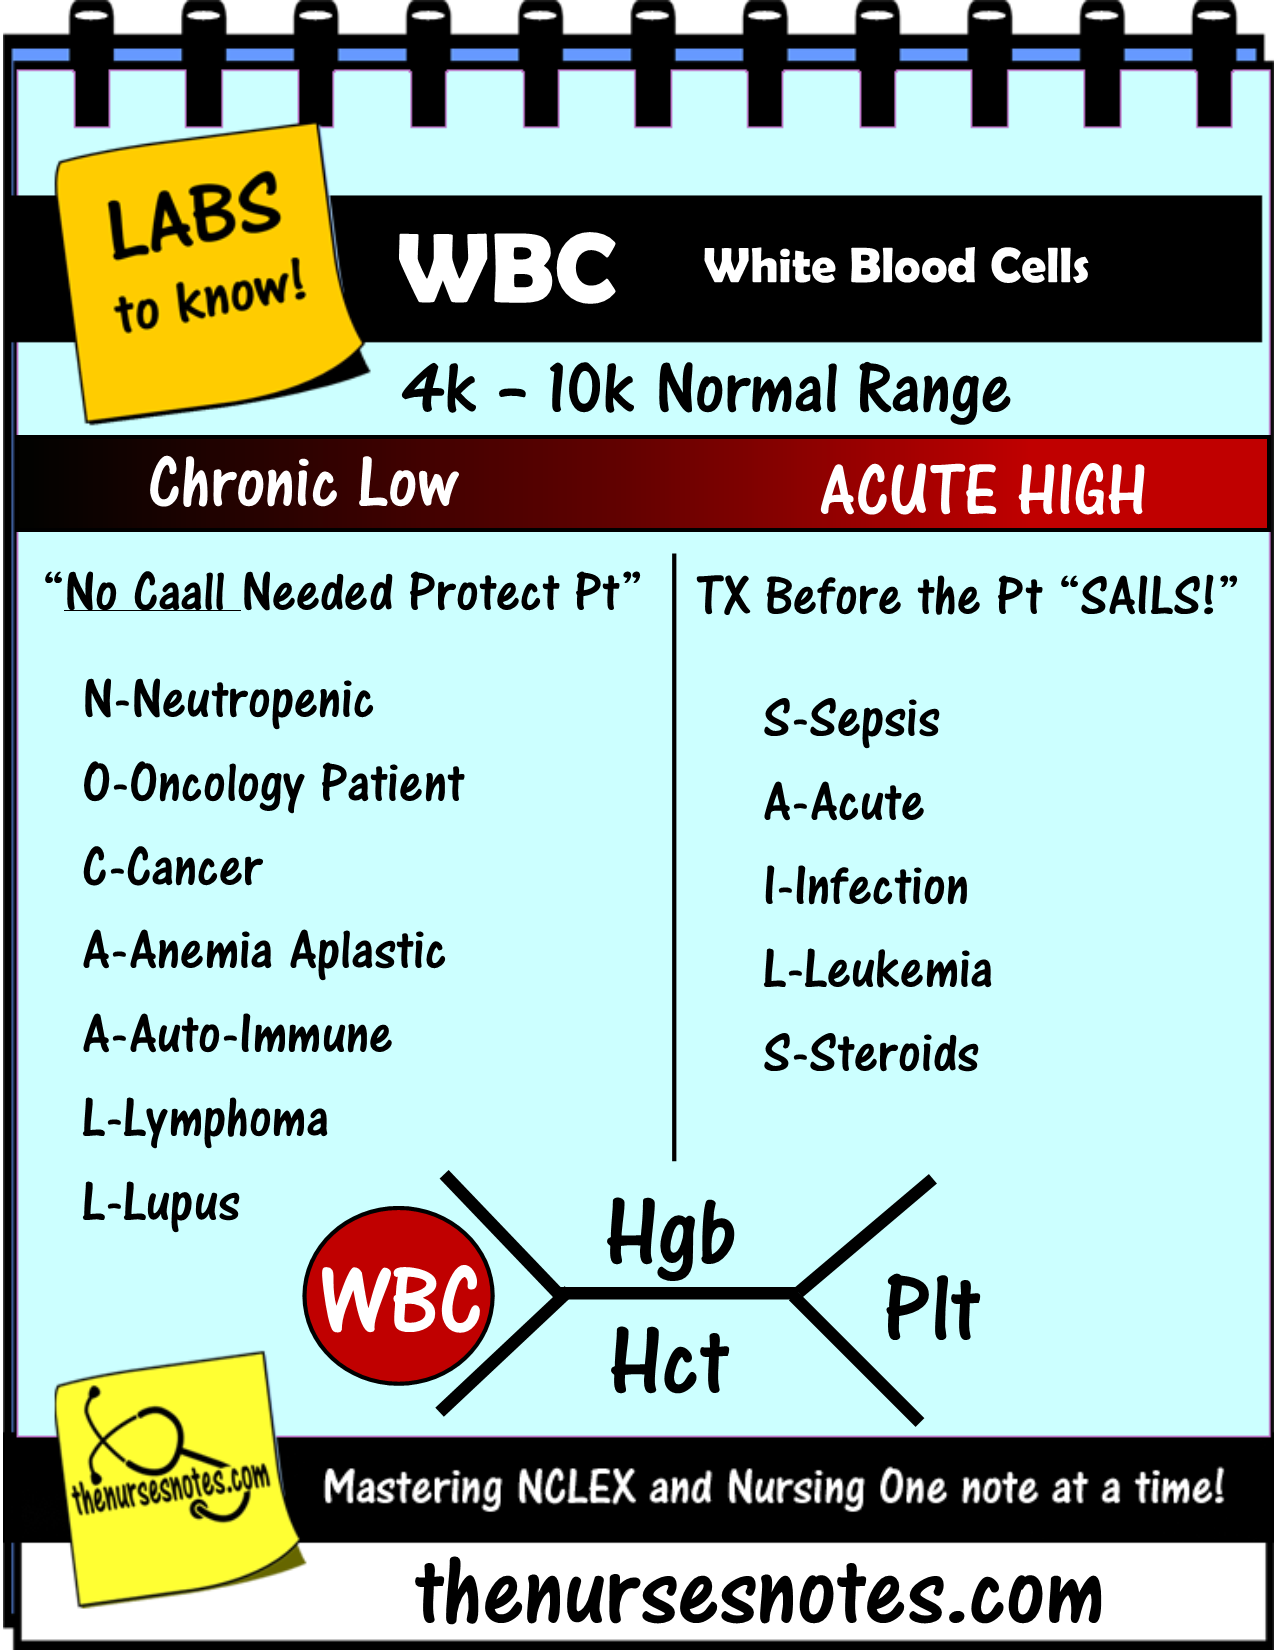 Cbc complete blood count wbc platelets hgb hct bmp chem7 fishbone cbc complete blood count wbc platelets hgb hct bmp chem7 fishbone diagram explaining labs from the blood book theses are the labs you should know ccuart Gallery